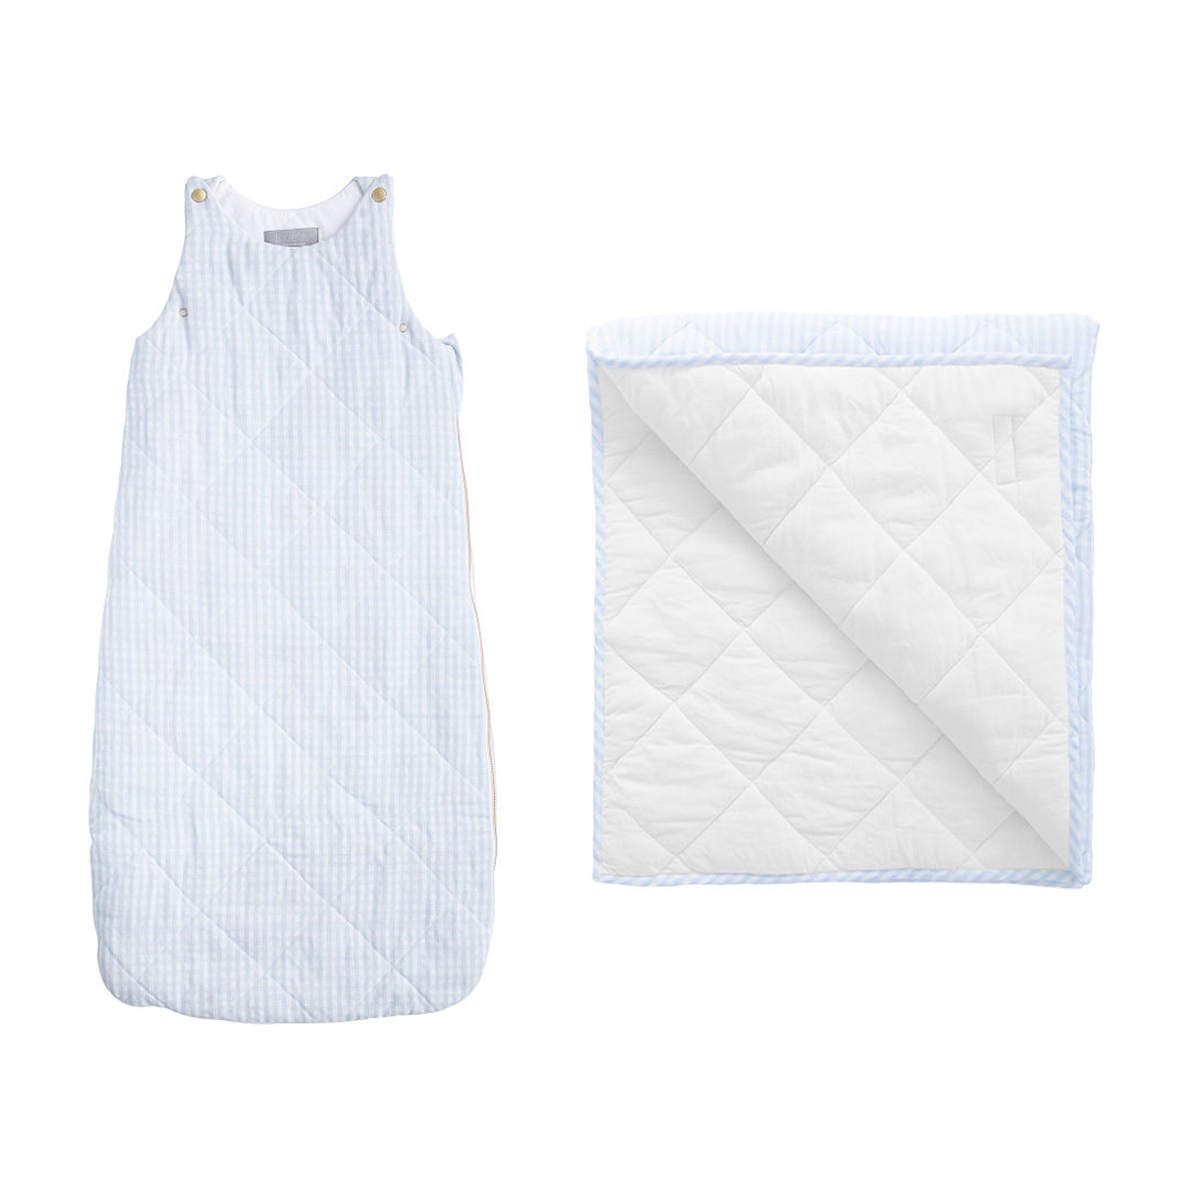 Louelle Playmat and Sleeping Bag Set – Pale Blue Gingham